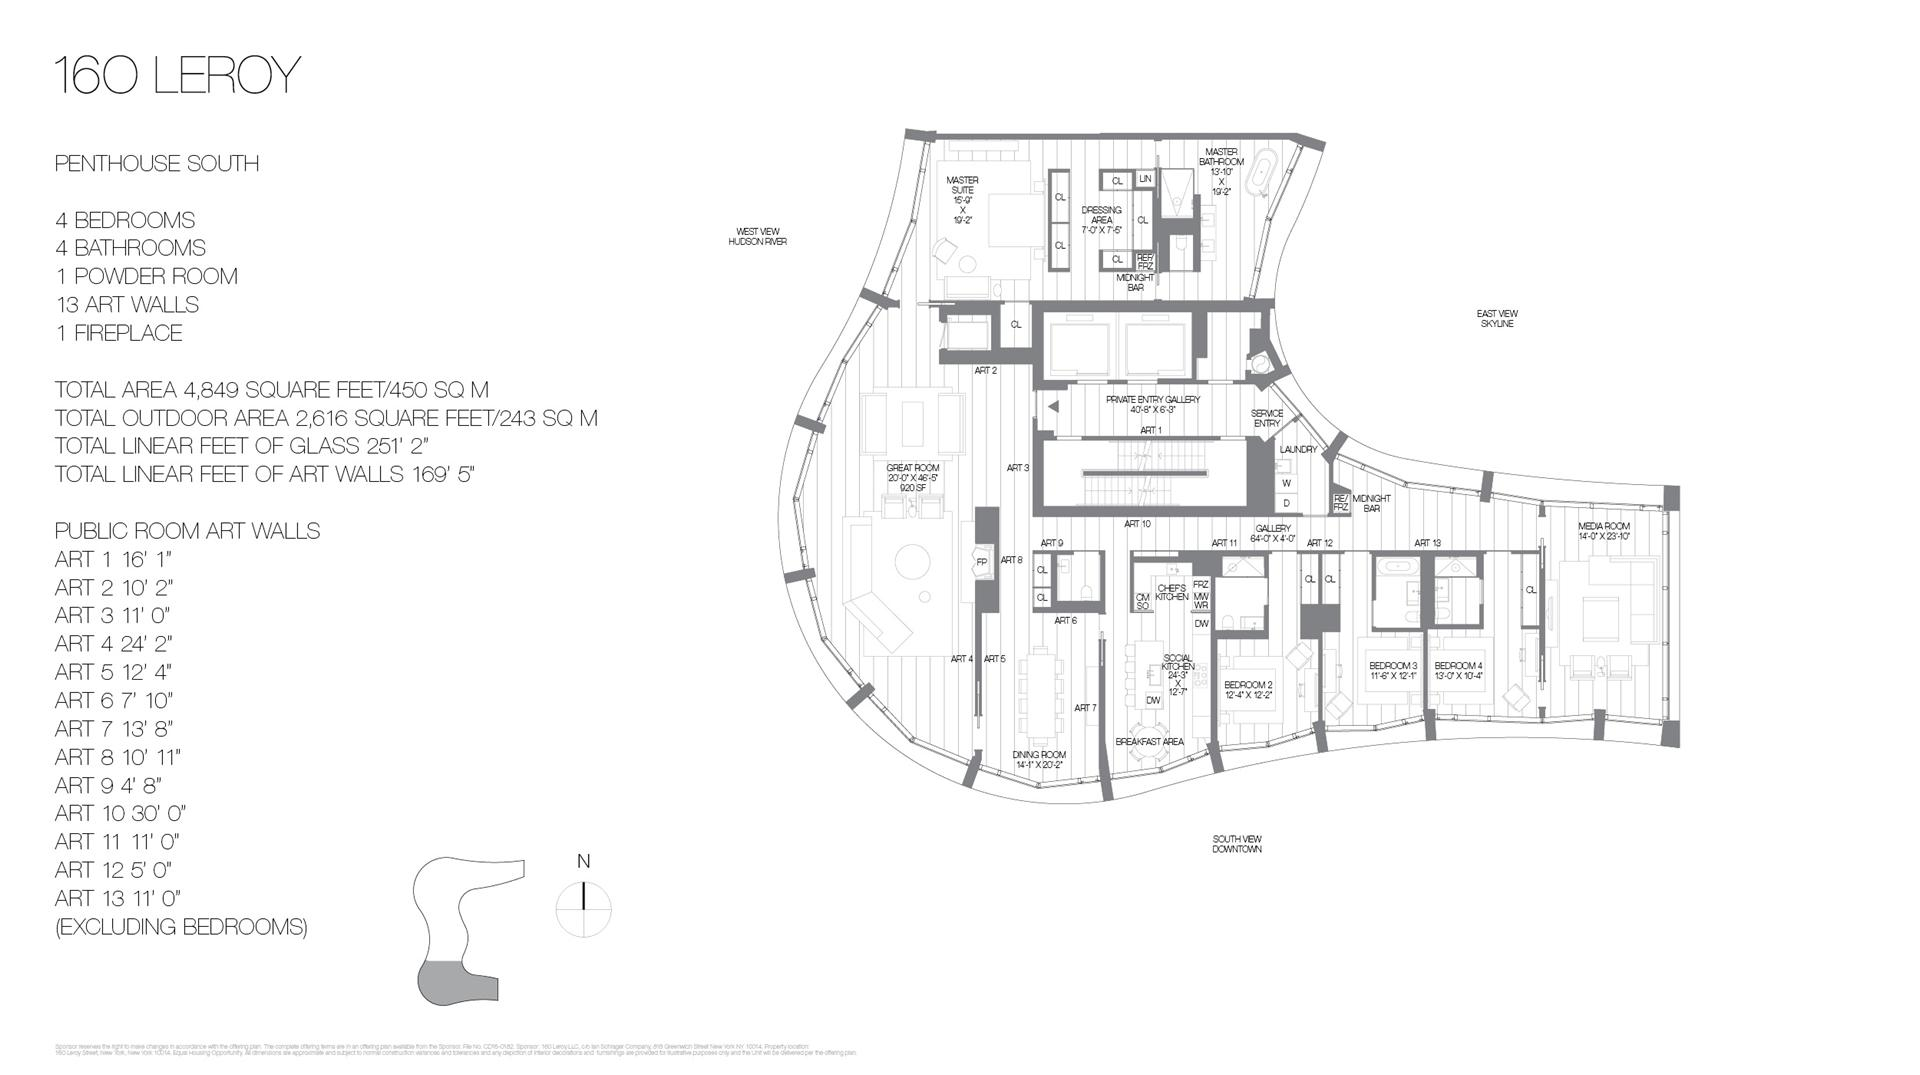 Floor plan of 160 Leroy St, PHSOUTH - West Village - Meatpacking District, New York